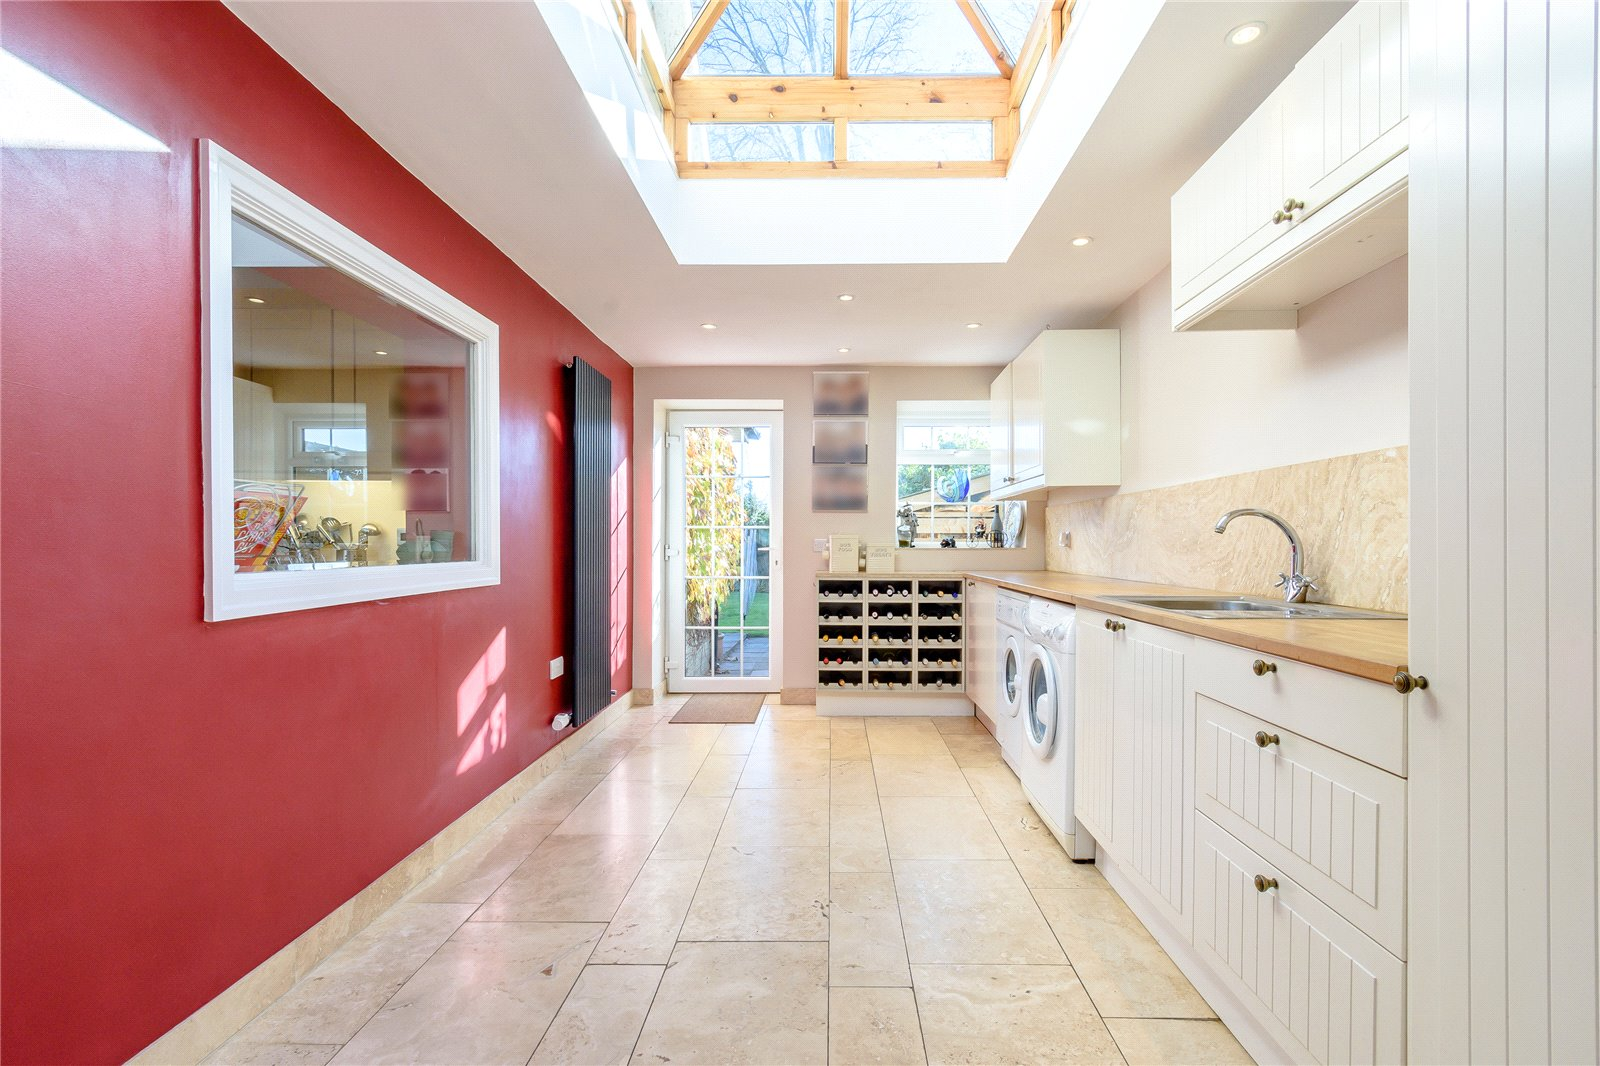 Property for sale in Wetherby, interior kitchen